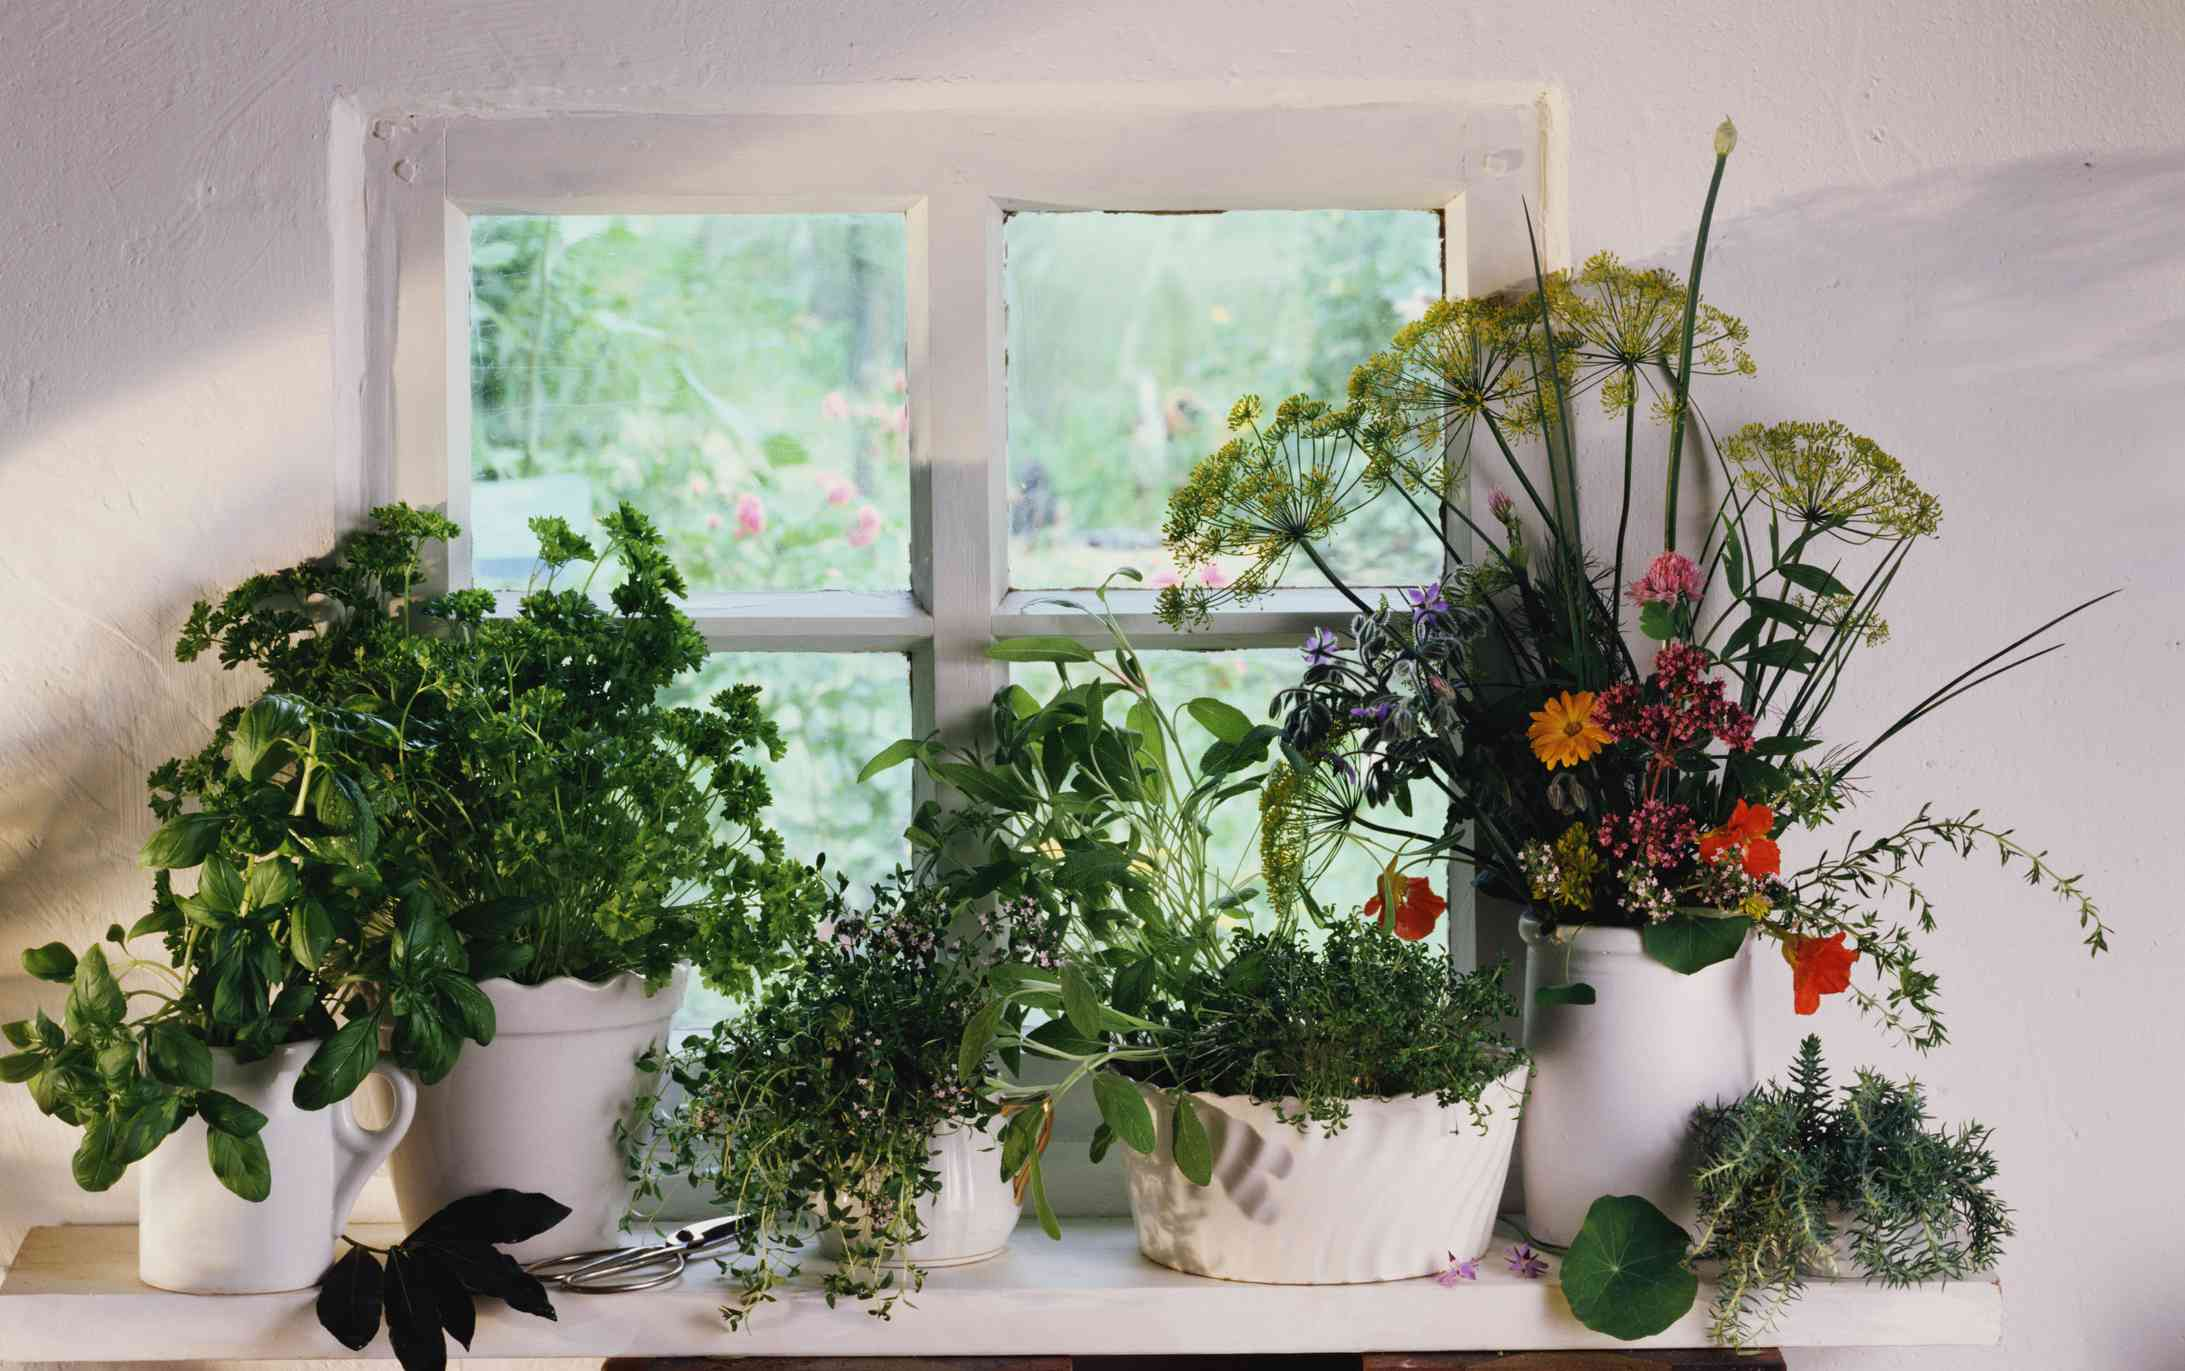 assorted herbs growing on white kitchen windowsill with flower bouquet in white vase